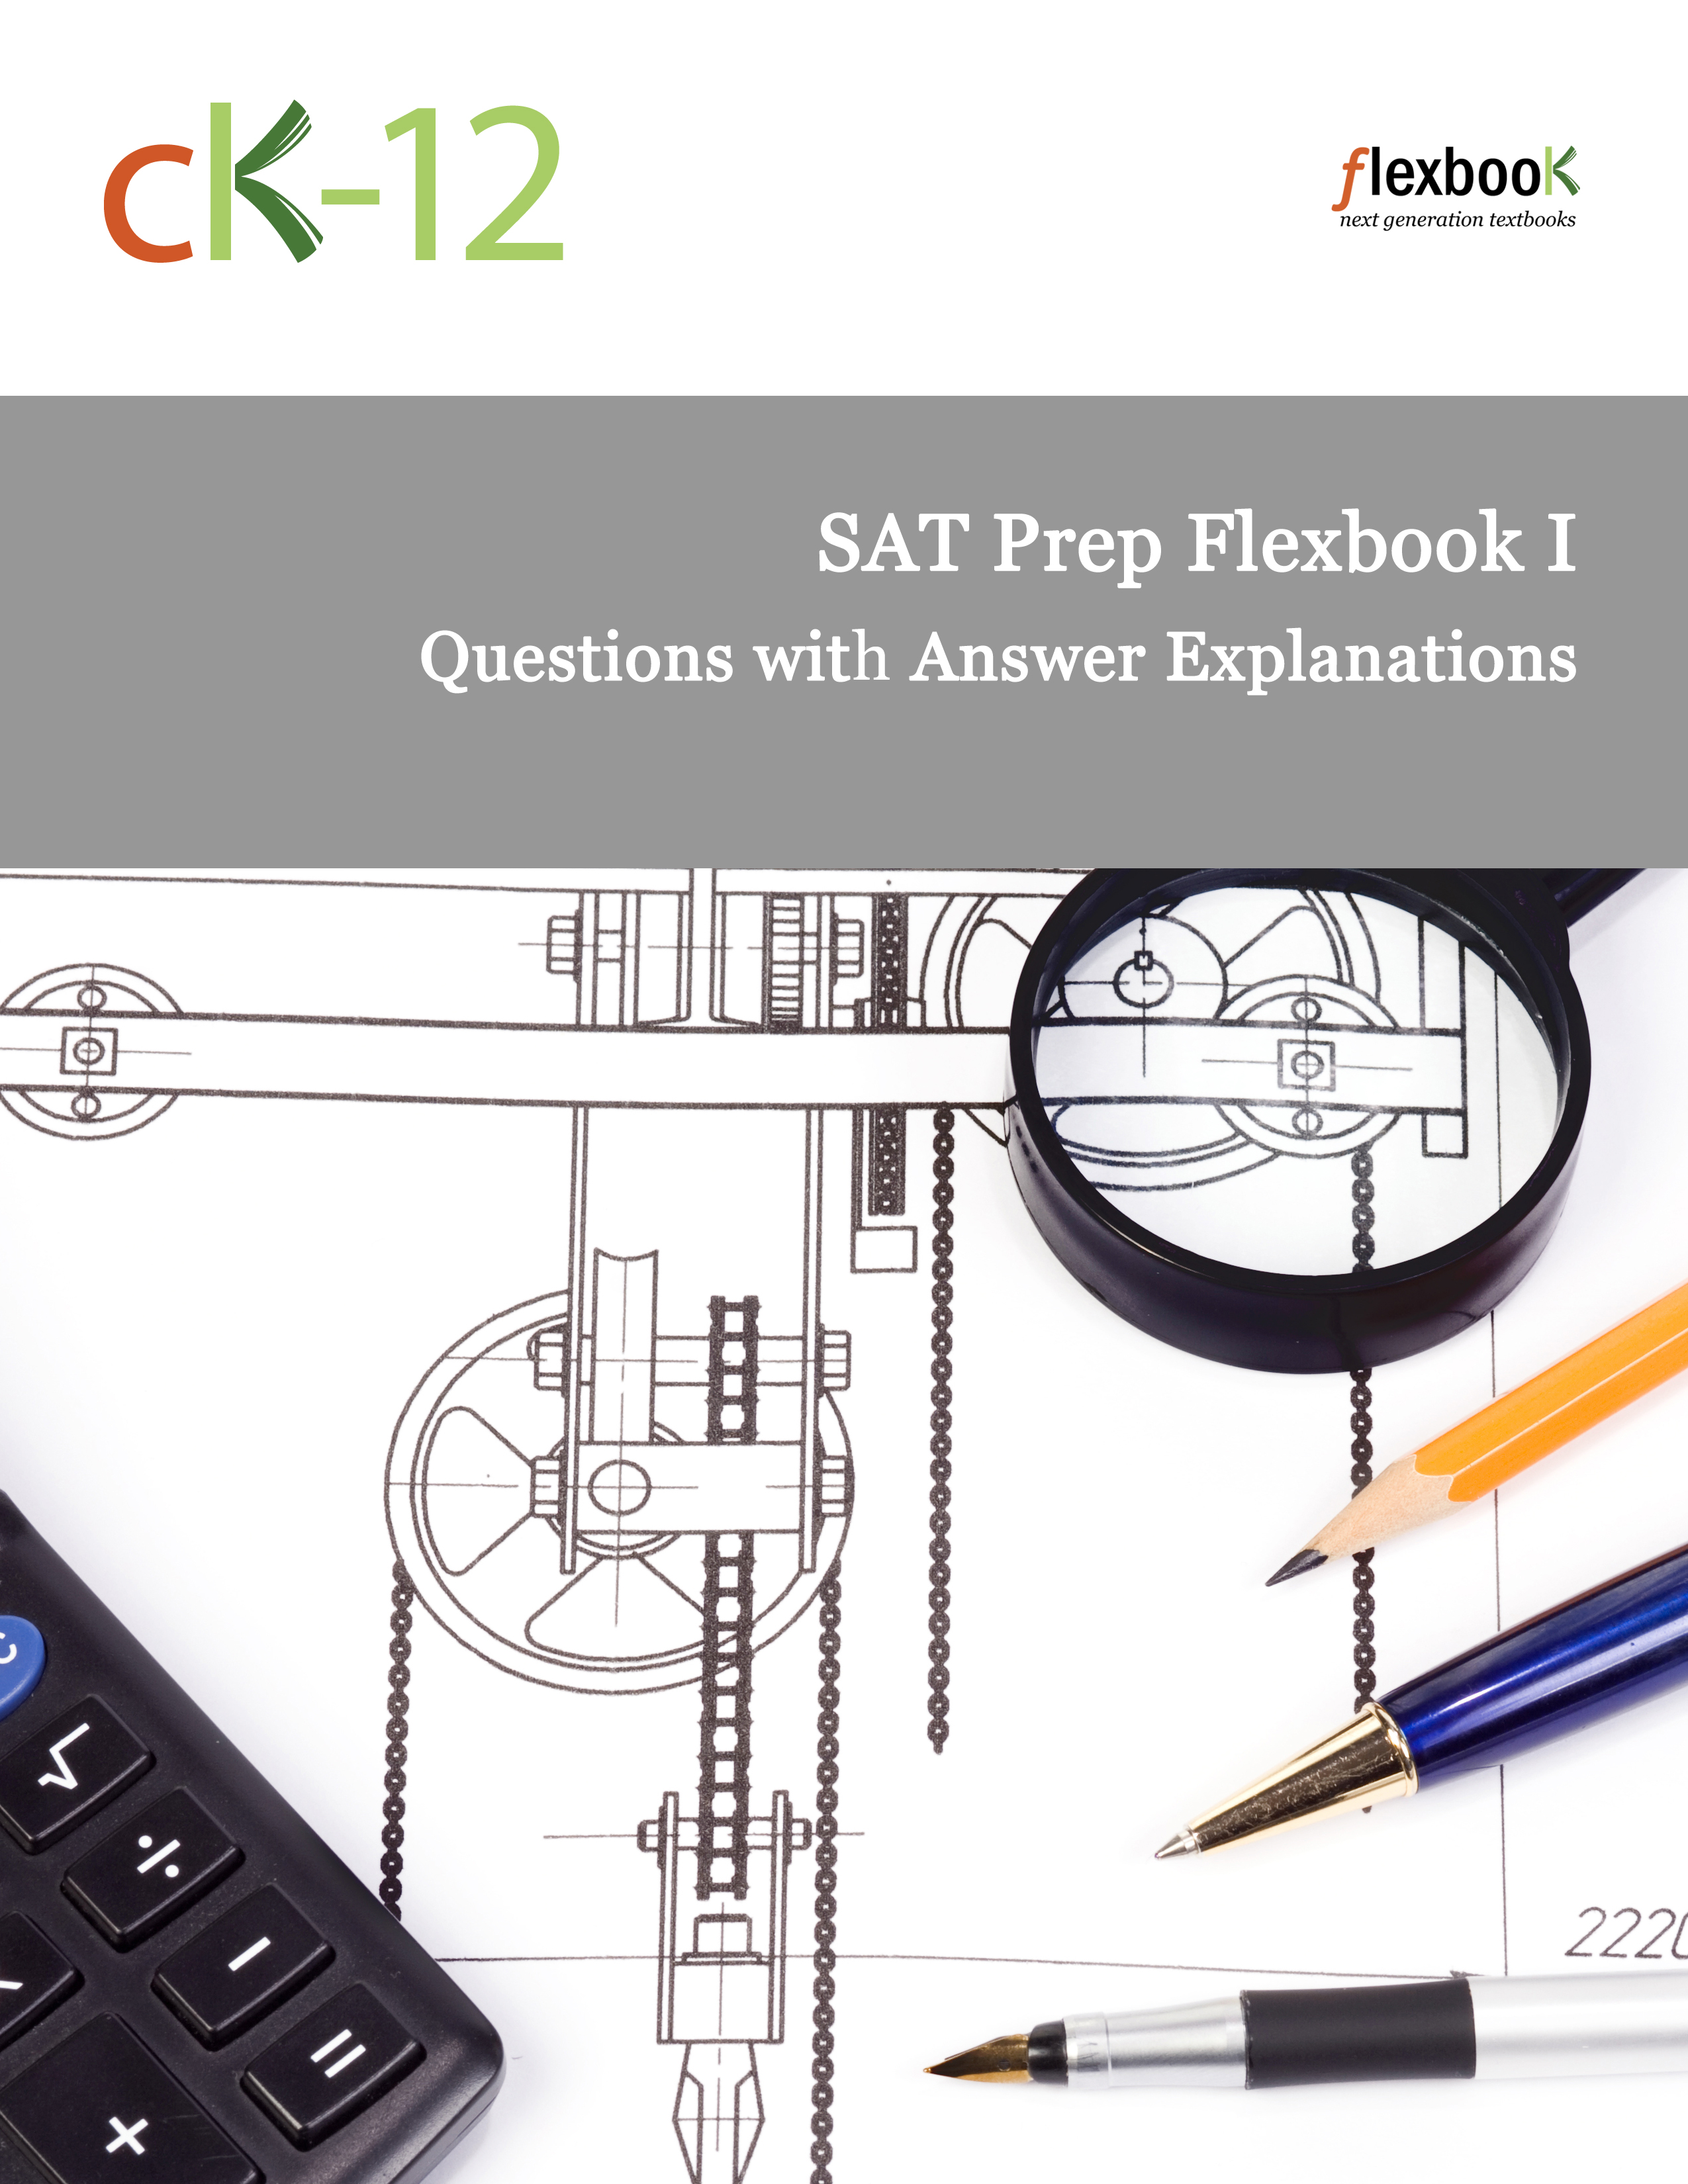 SAT Prep Math Questions with Explanations – Sat Prep Math Worksheets